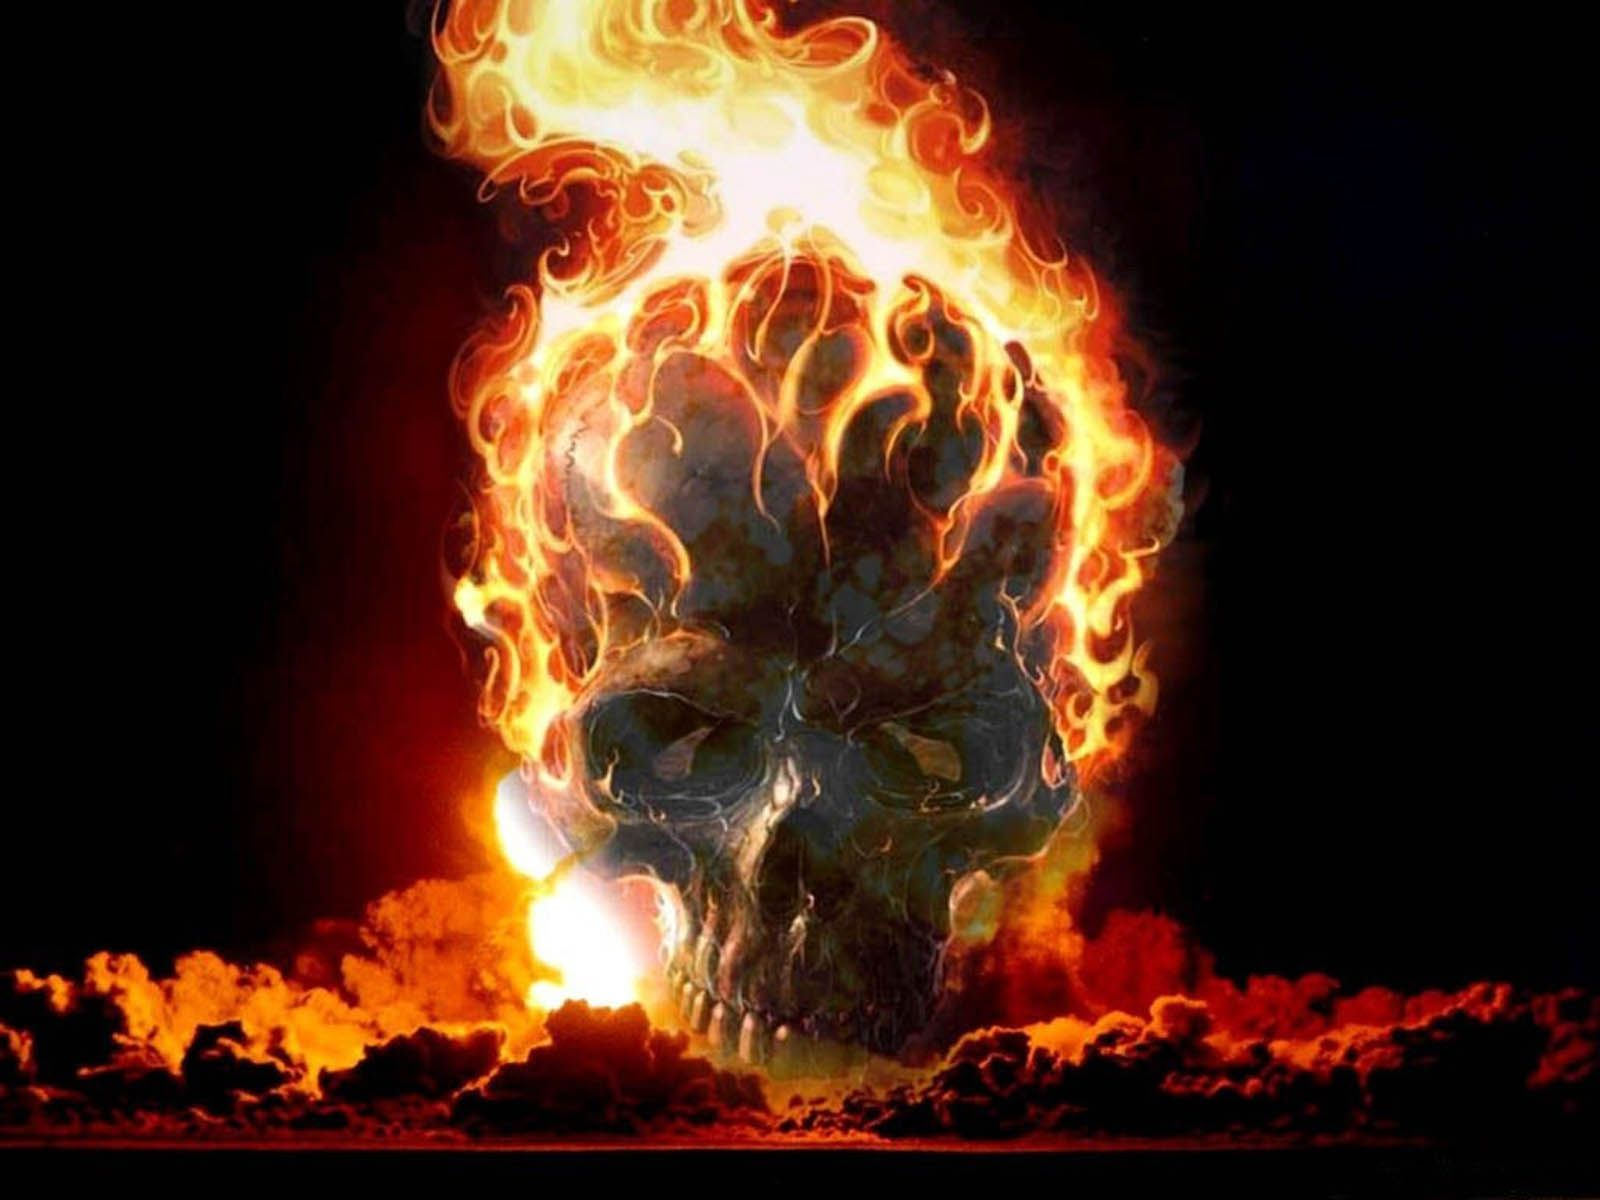 cool skull pictures | Tag: Horror Skull Wallpapers, Backgrounds, Photos, Pictures, and ...